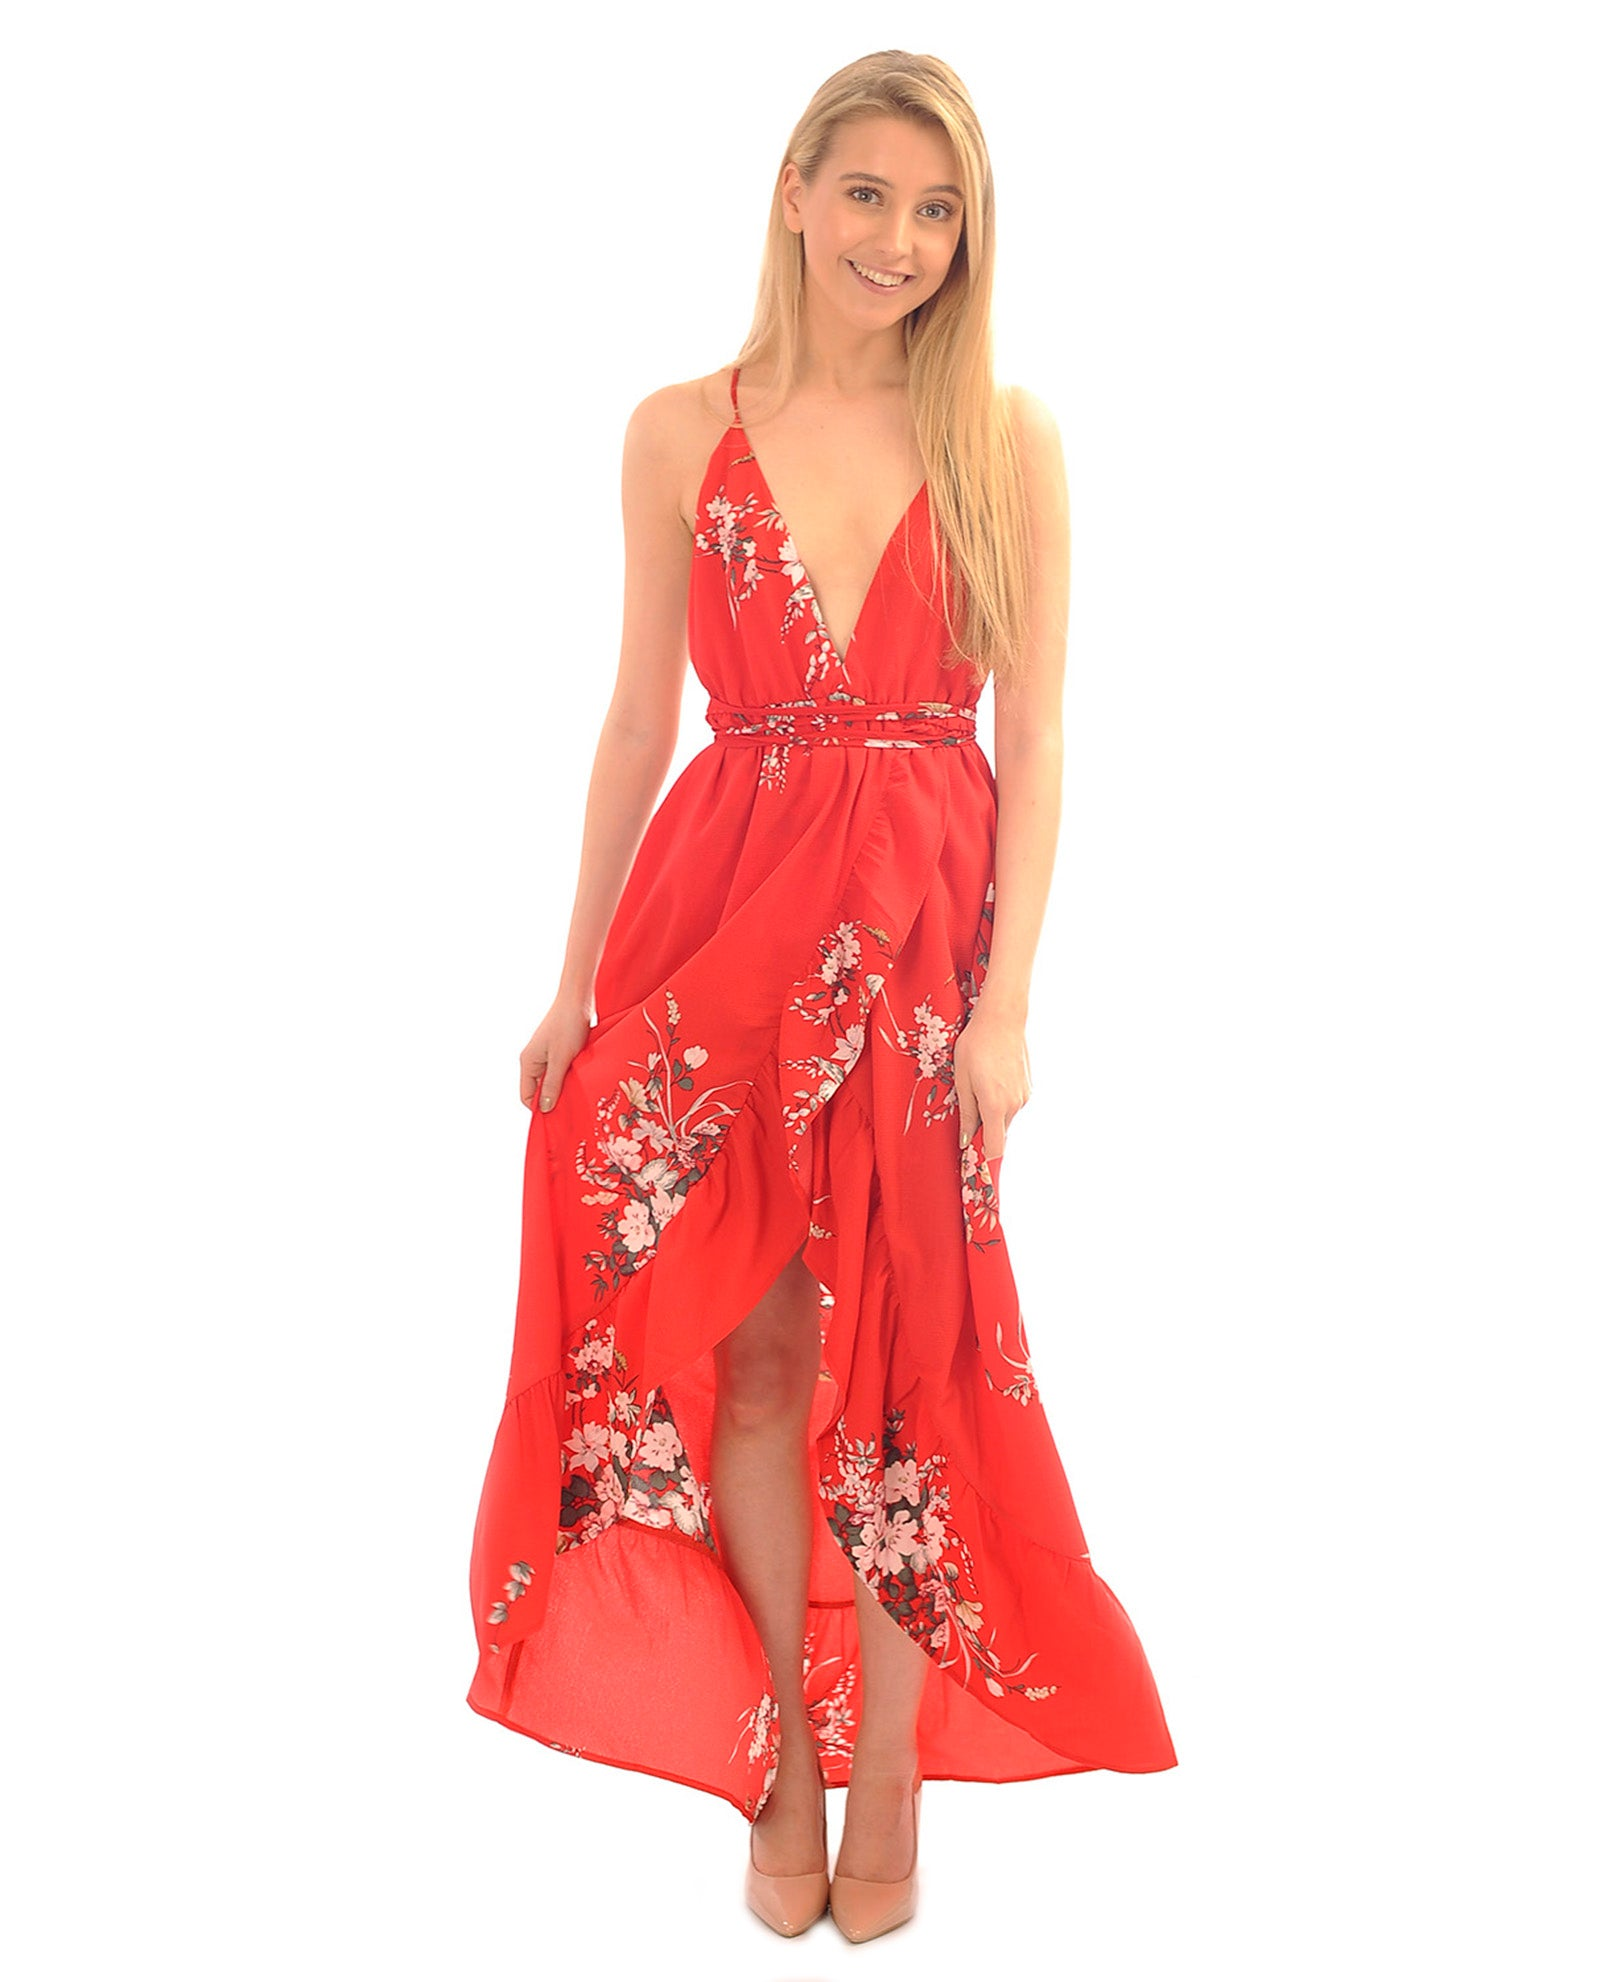 Rent dress | Red floral wrap maxi dress | Hirestreetuk.com